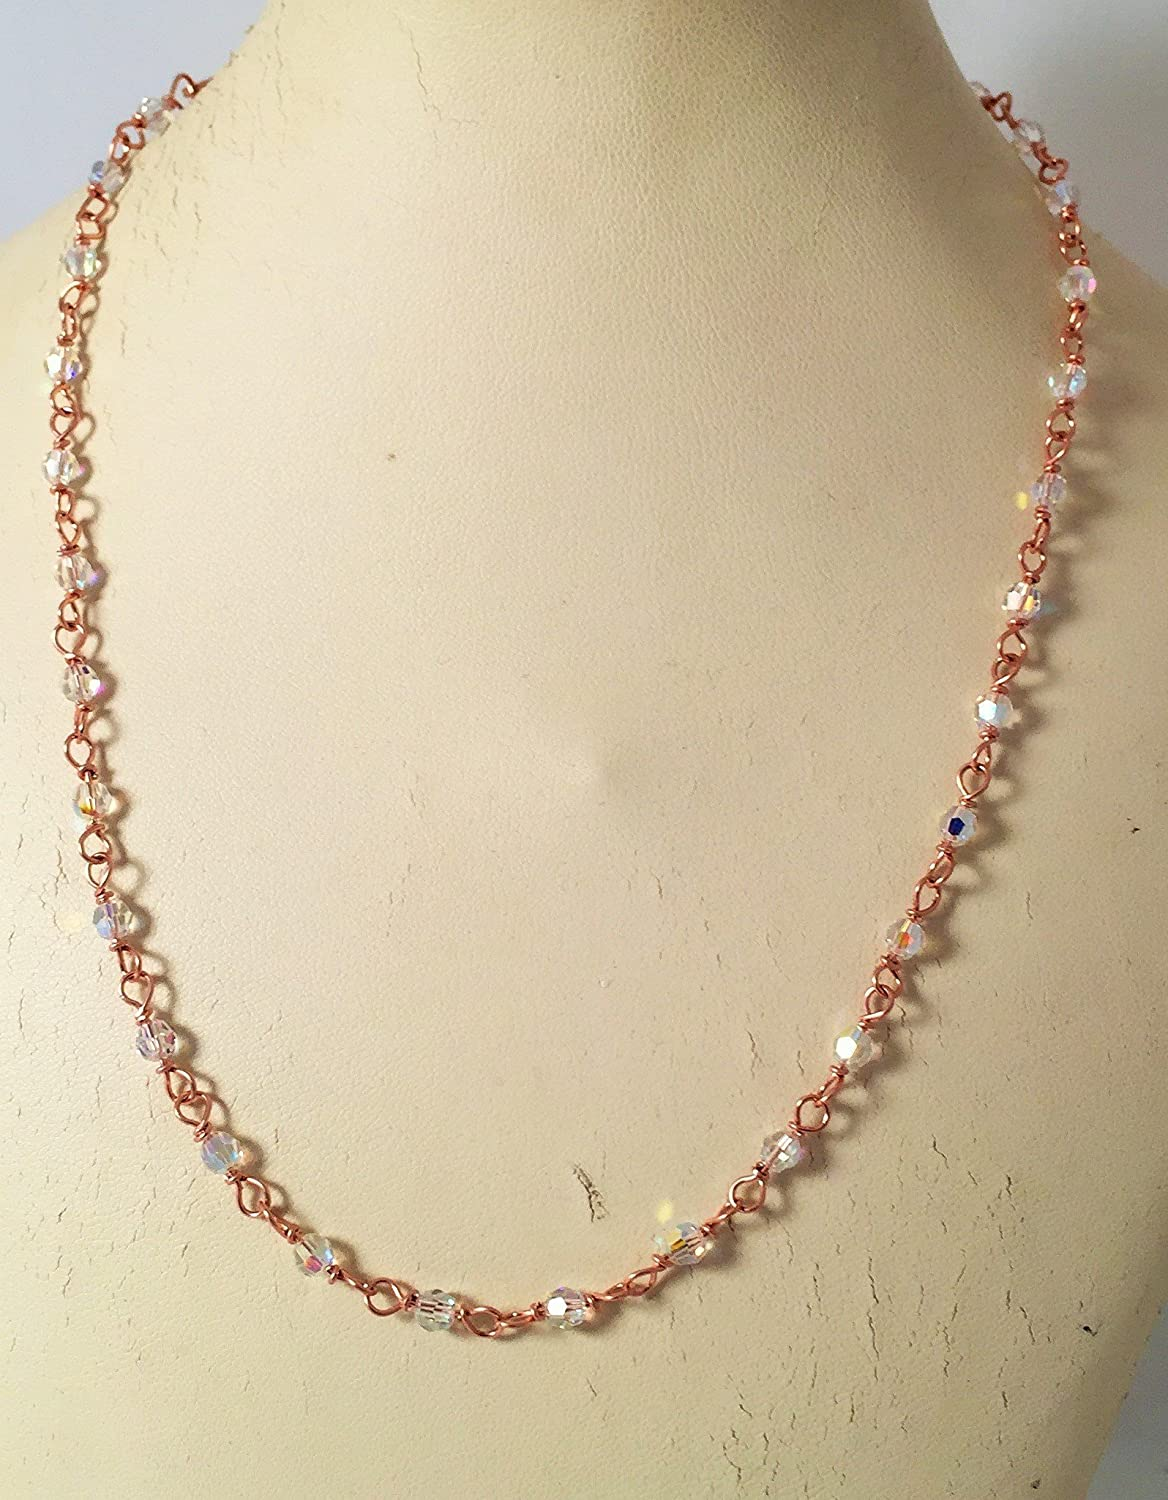 Crystal Rose Gold Necklace 2021new shipping lowest price free